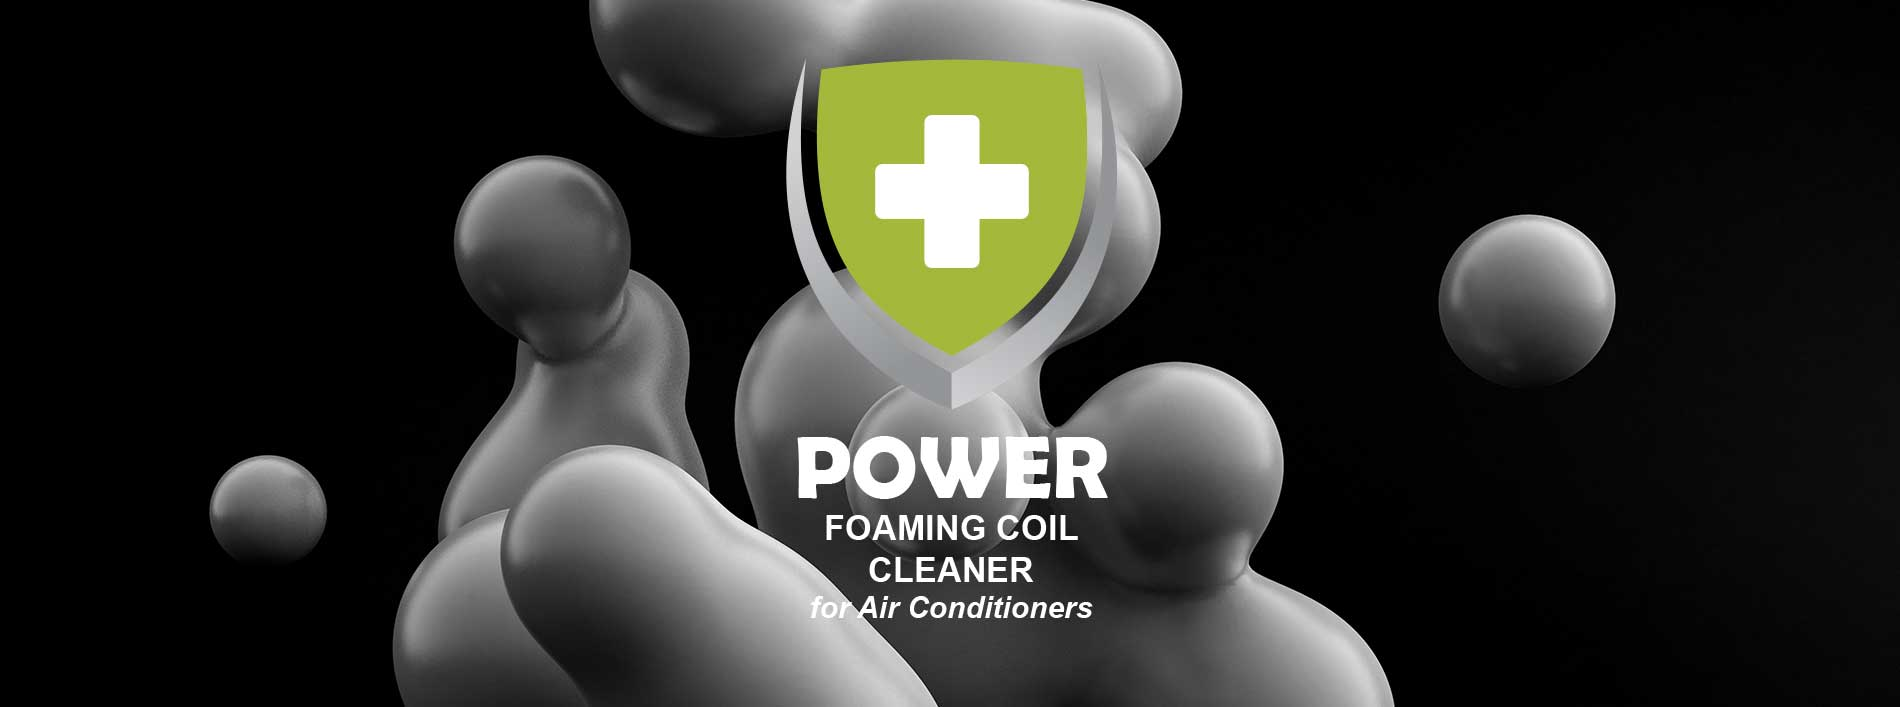 Power Technologies POWER Foaming Coil Cleaner